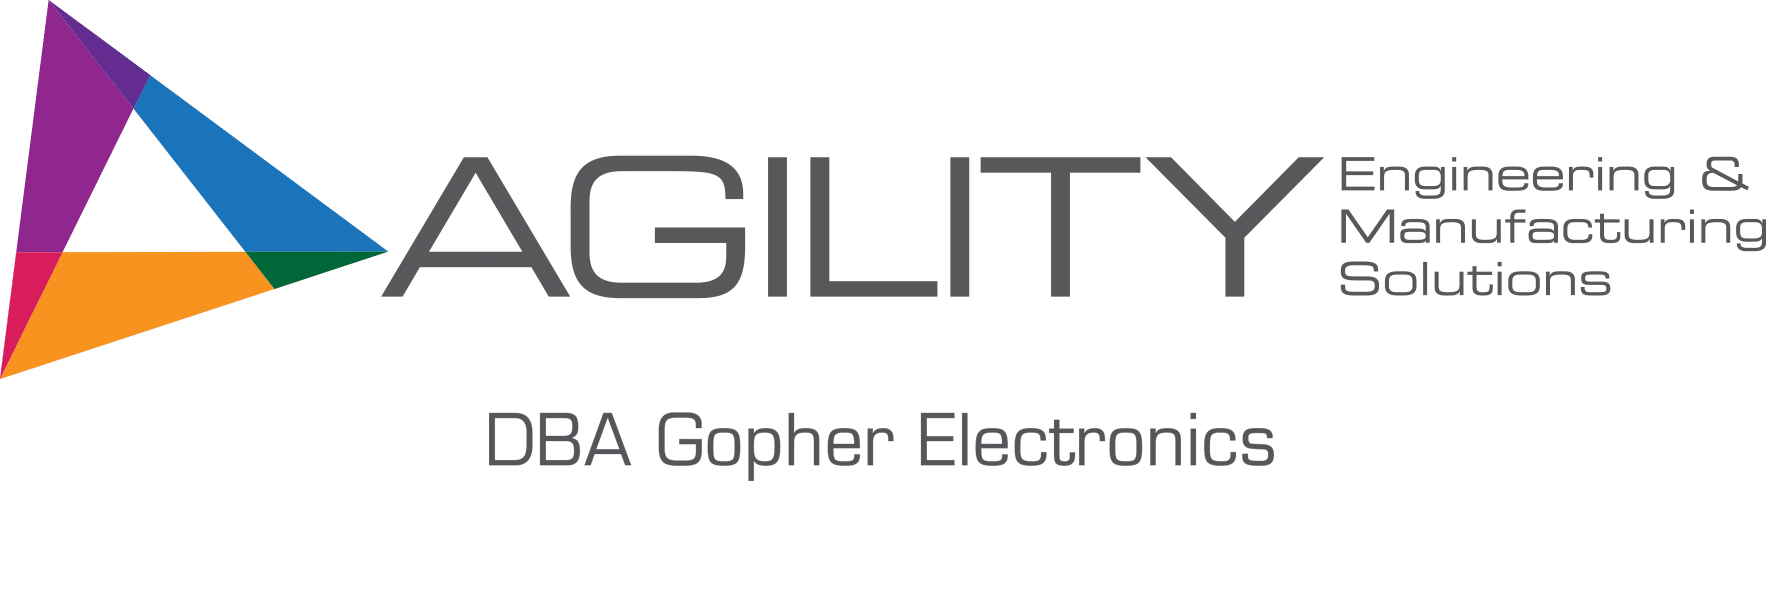 Agility Engineering and Manufacturing Solutions